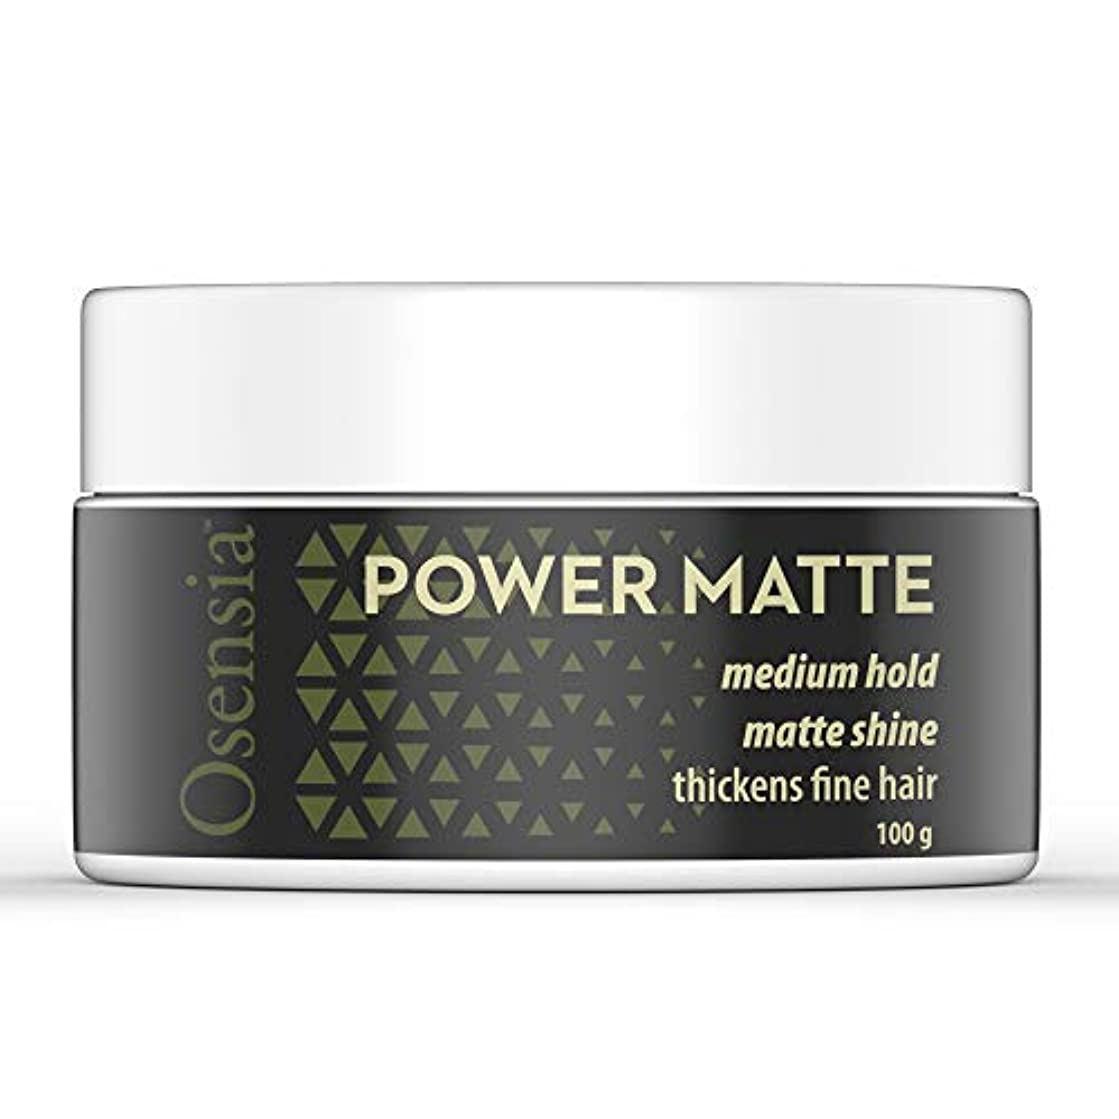 Matte Hair Clay – Water Based Hair Styling Gel with Matte Finish and Medium Hold for Natural Styling – Weightless Texture, No Residue, Thickens Fine Hair by Osensia, 3.4oz